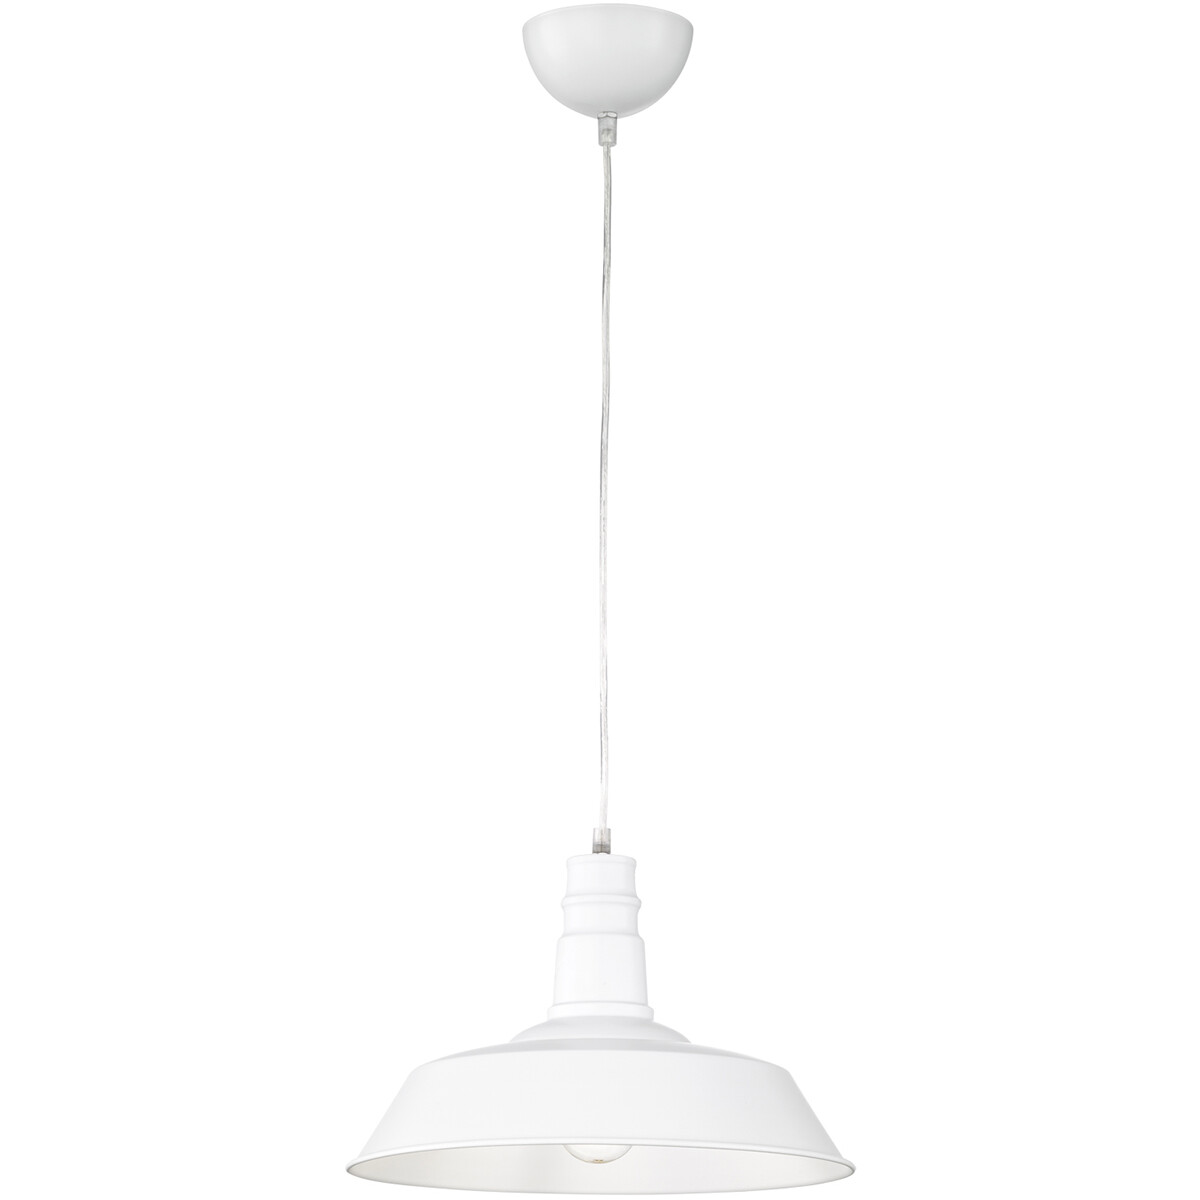 LED Hanglamp - Hangverlichting - Trion Wulo - E27 Fitting - Rond - Mat Wit - Aluminium